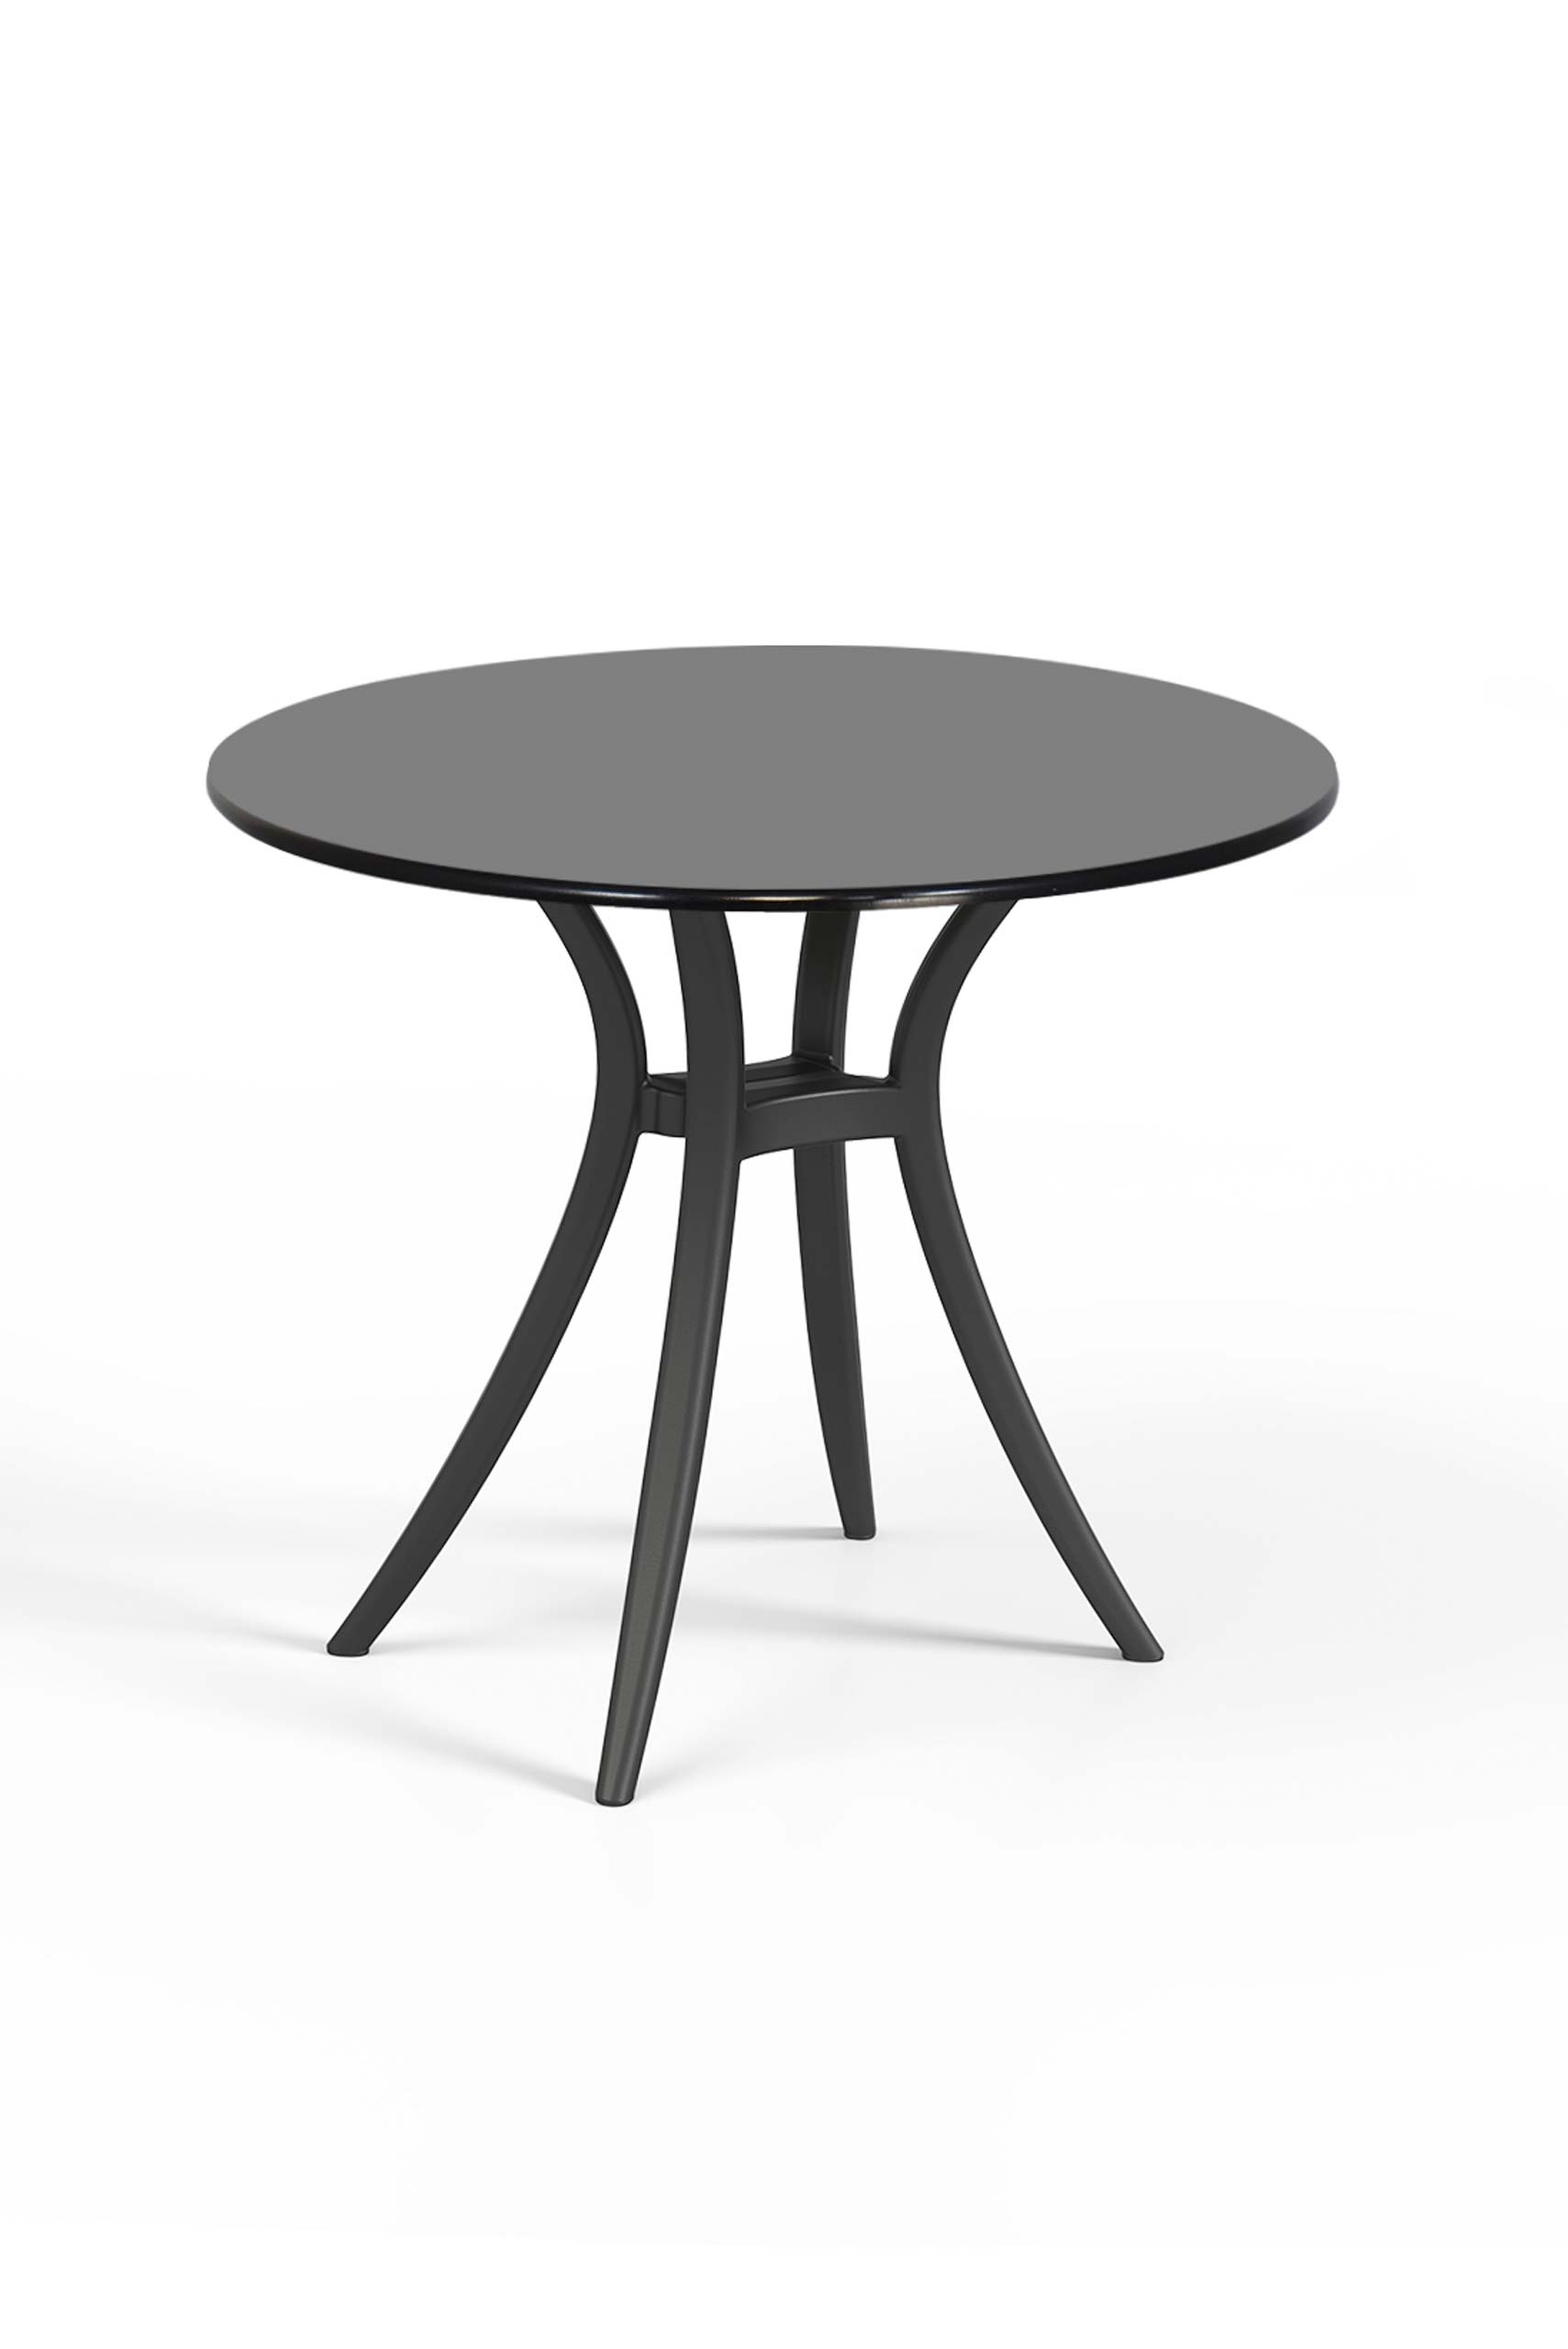 CLASSIC table anthracite